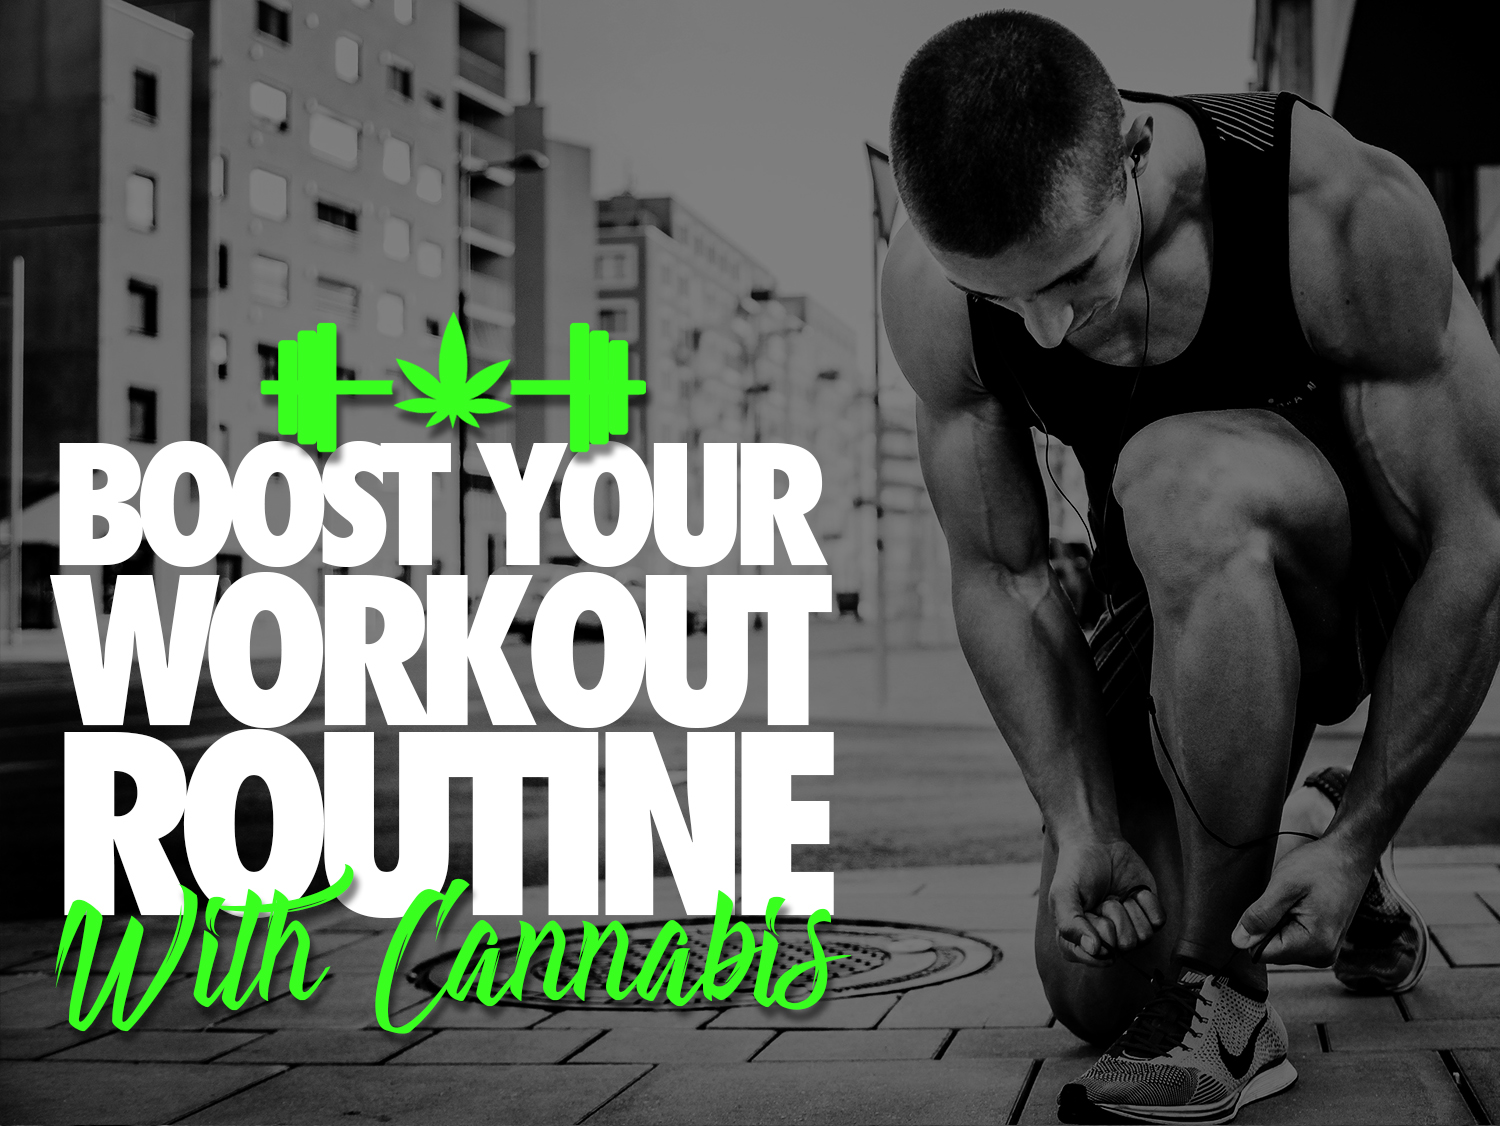 Boost Your Workout Routine With Cannabis